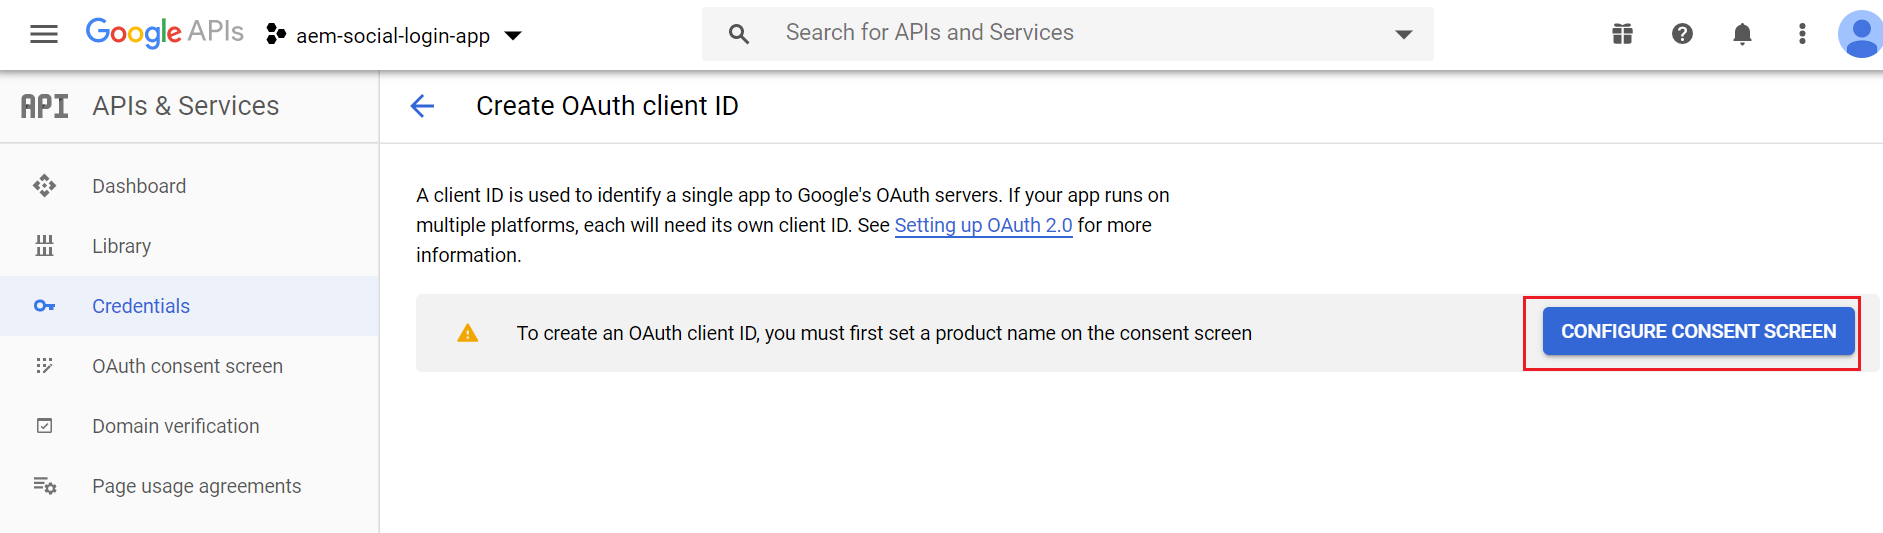 aem-social-login-with-google